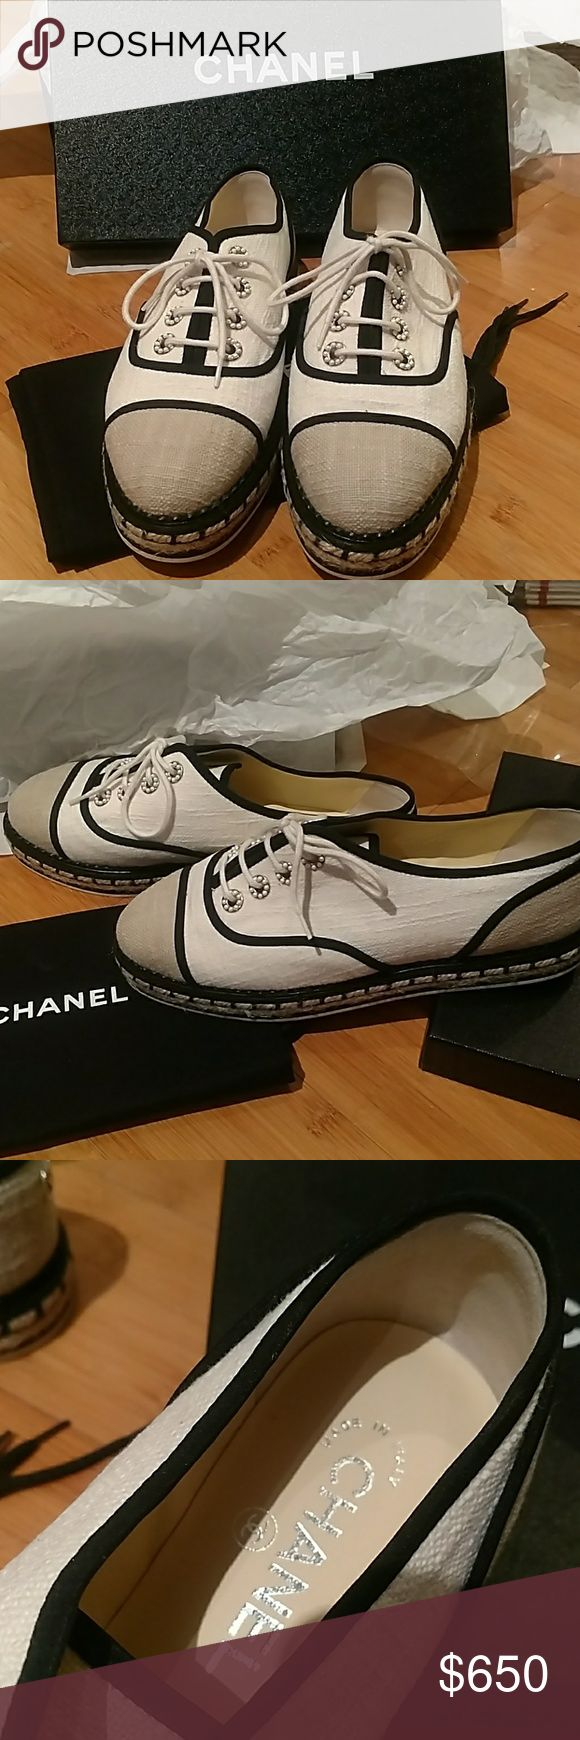 Chanel Espadrille sneakers tennis shoes 5.5 flats 100% authentic, brand new in box Chanel cotton lace up Espadrille tennis shoes/flats. These are European size 36.5 (US 6.5). Complete with original box and dust pouch. CHANEL Shoes Espadrilles